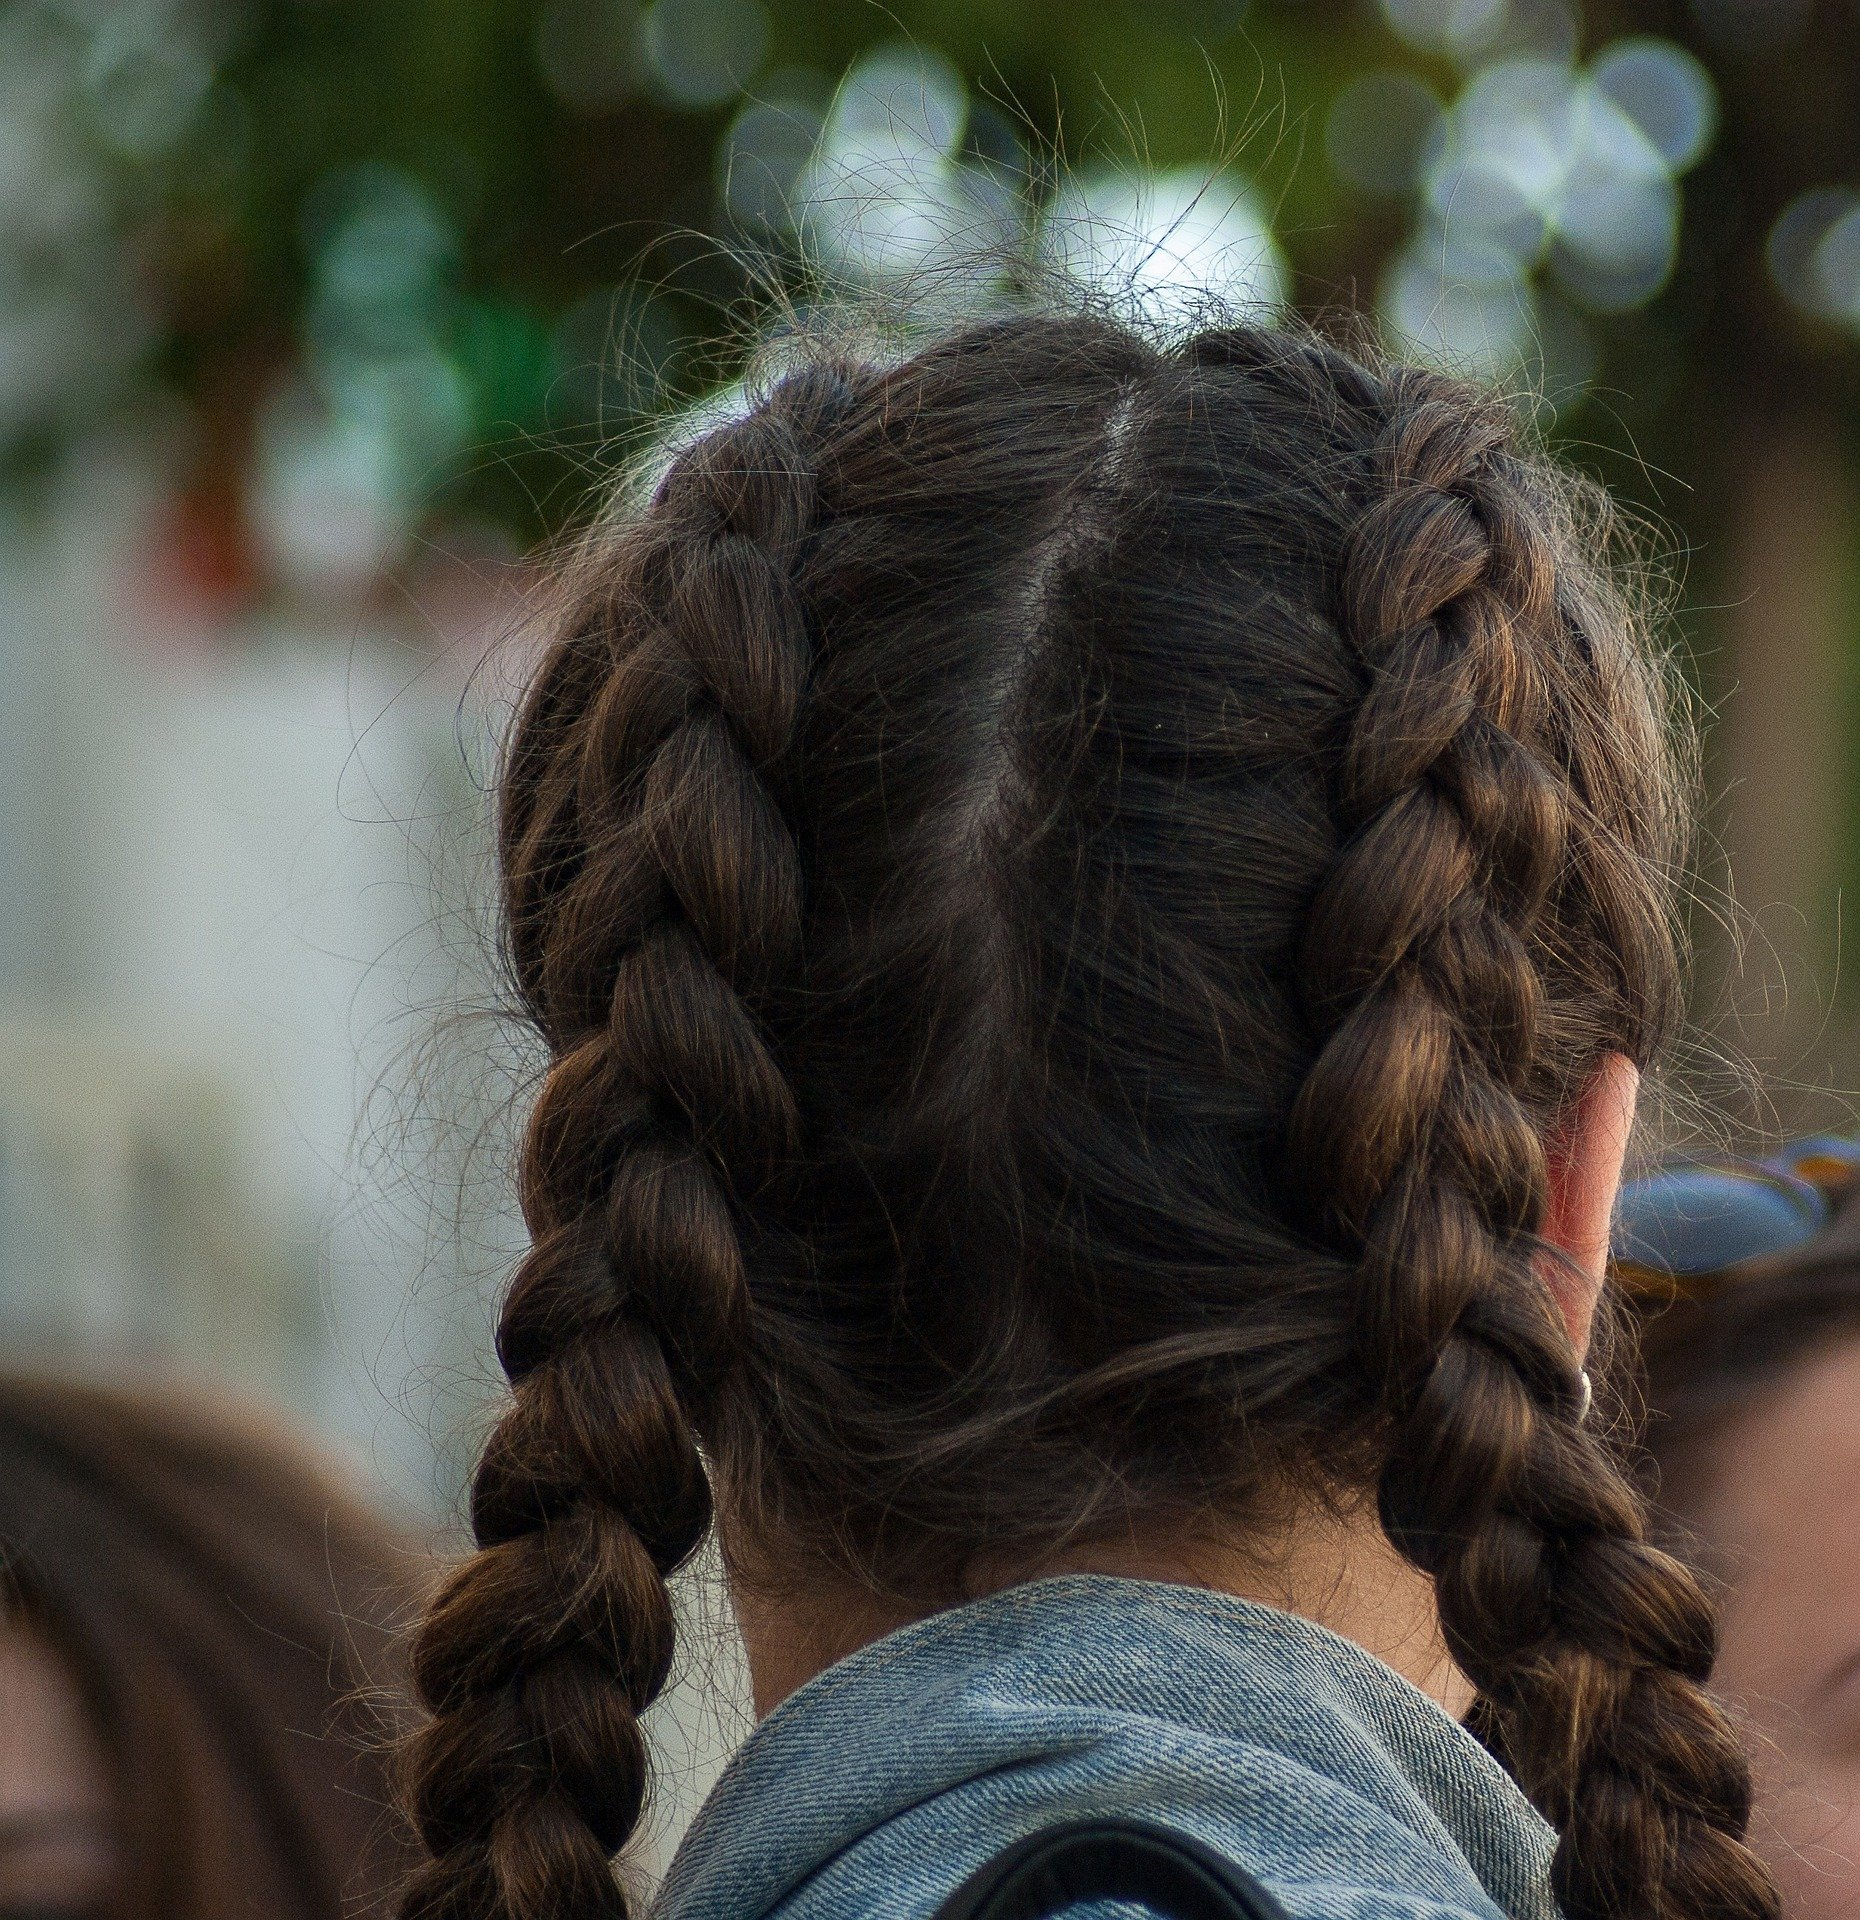 Pictured - A Double Dutch hairstyle   Source: Pixabay